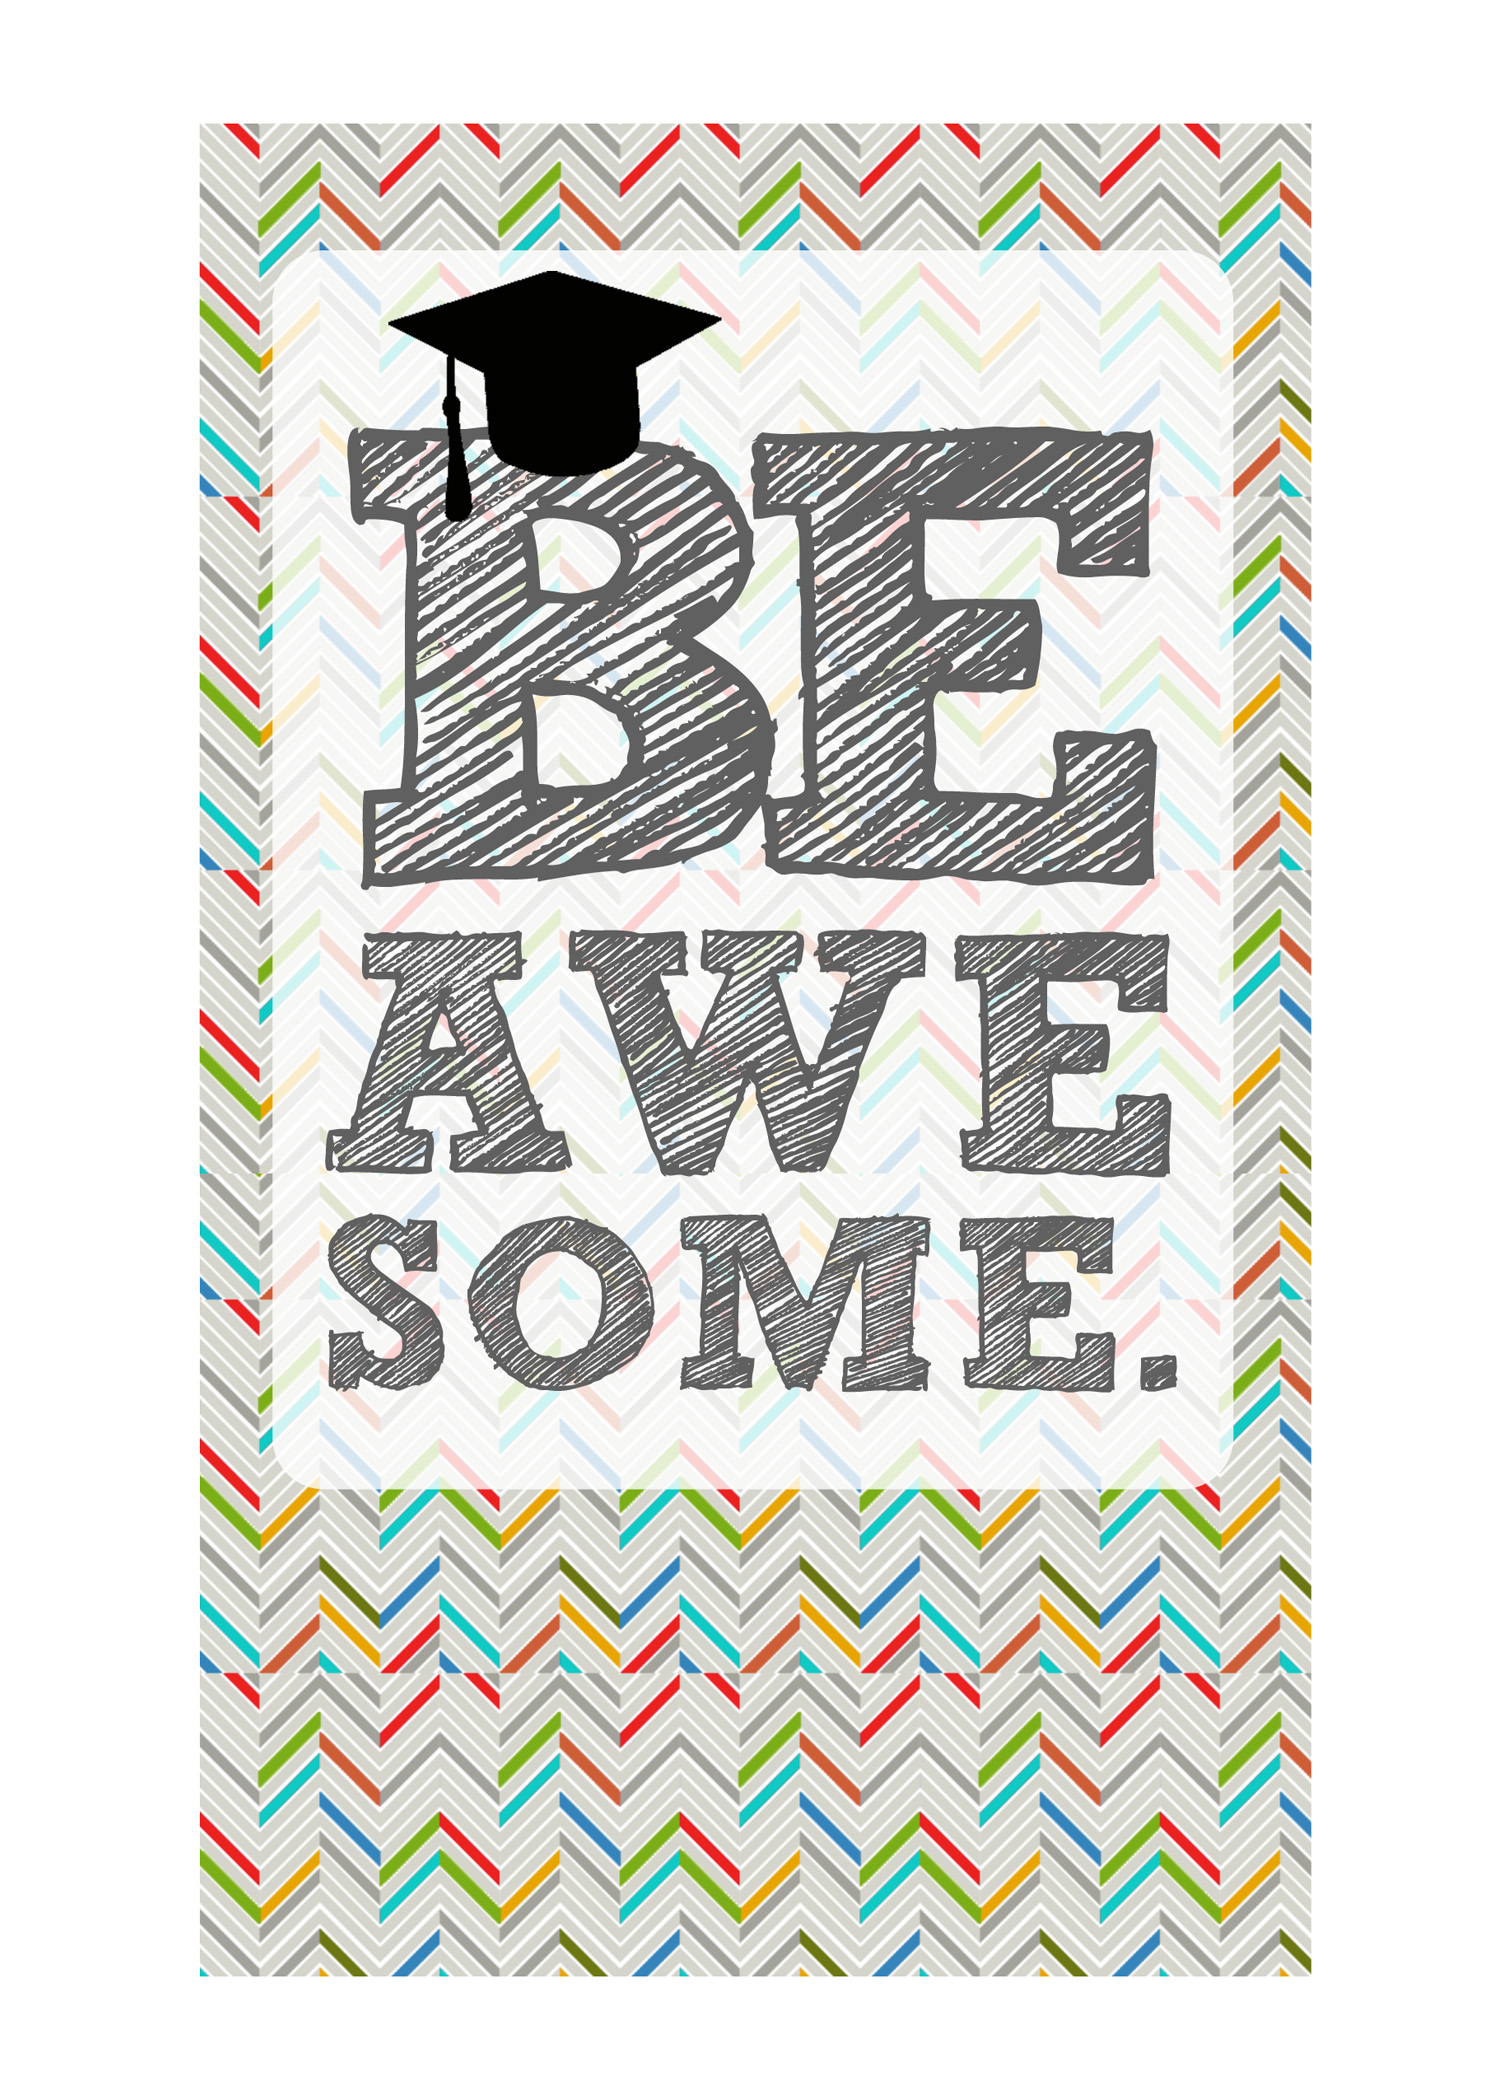 Handy image intended for free printable funny graduation cards